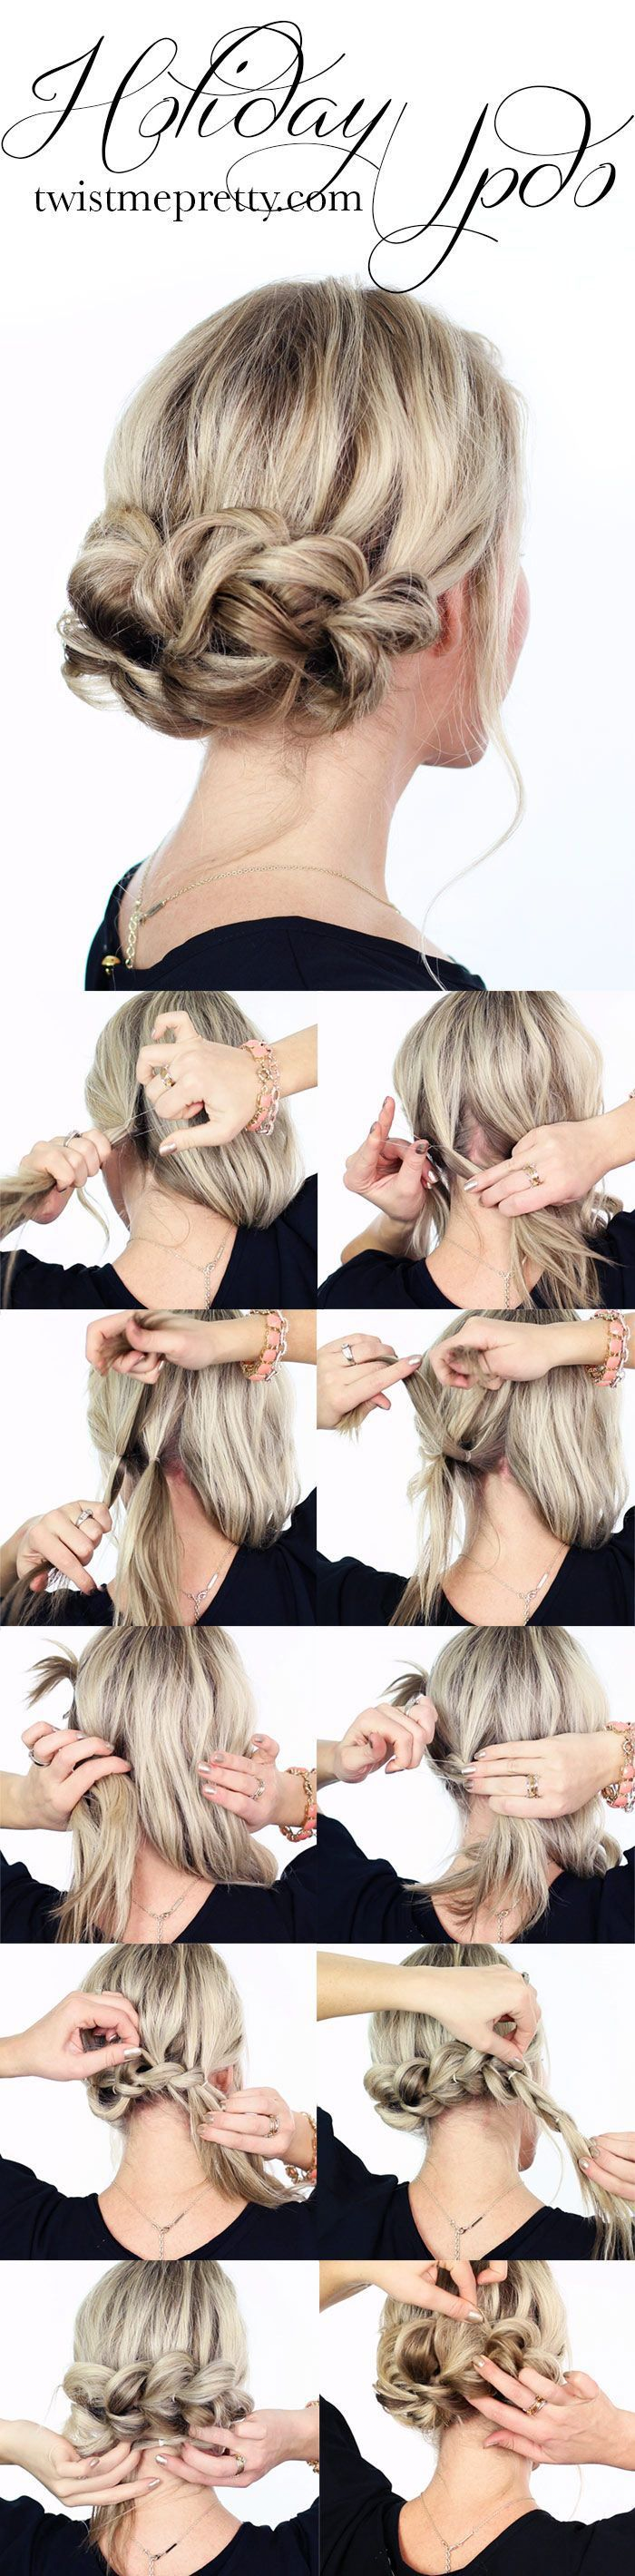 Updo Tutorials For Long Thin Hair Aceaadefbce